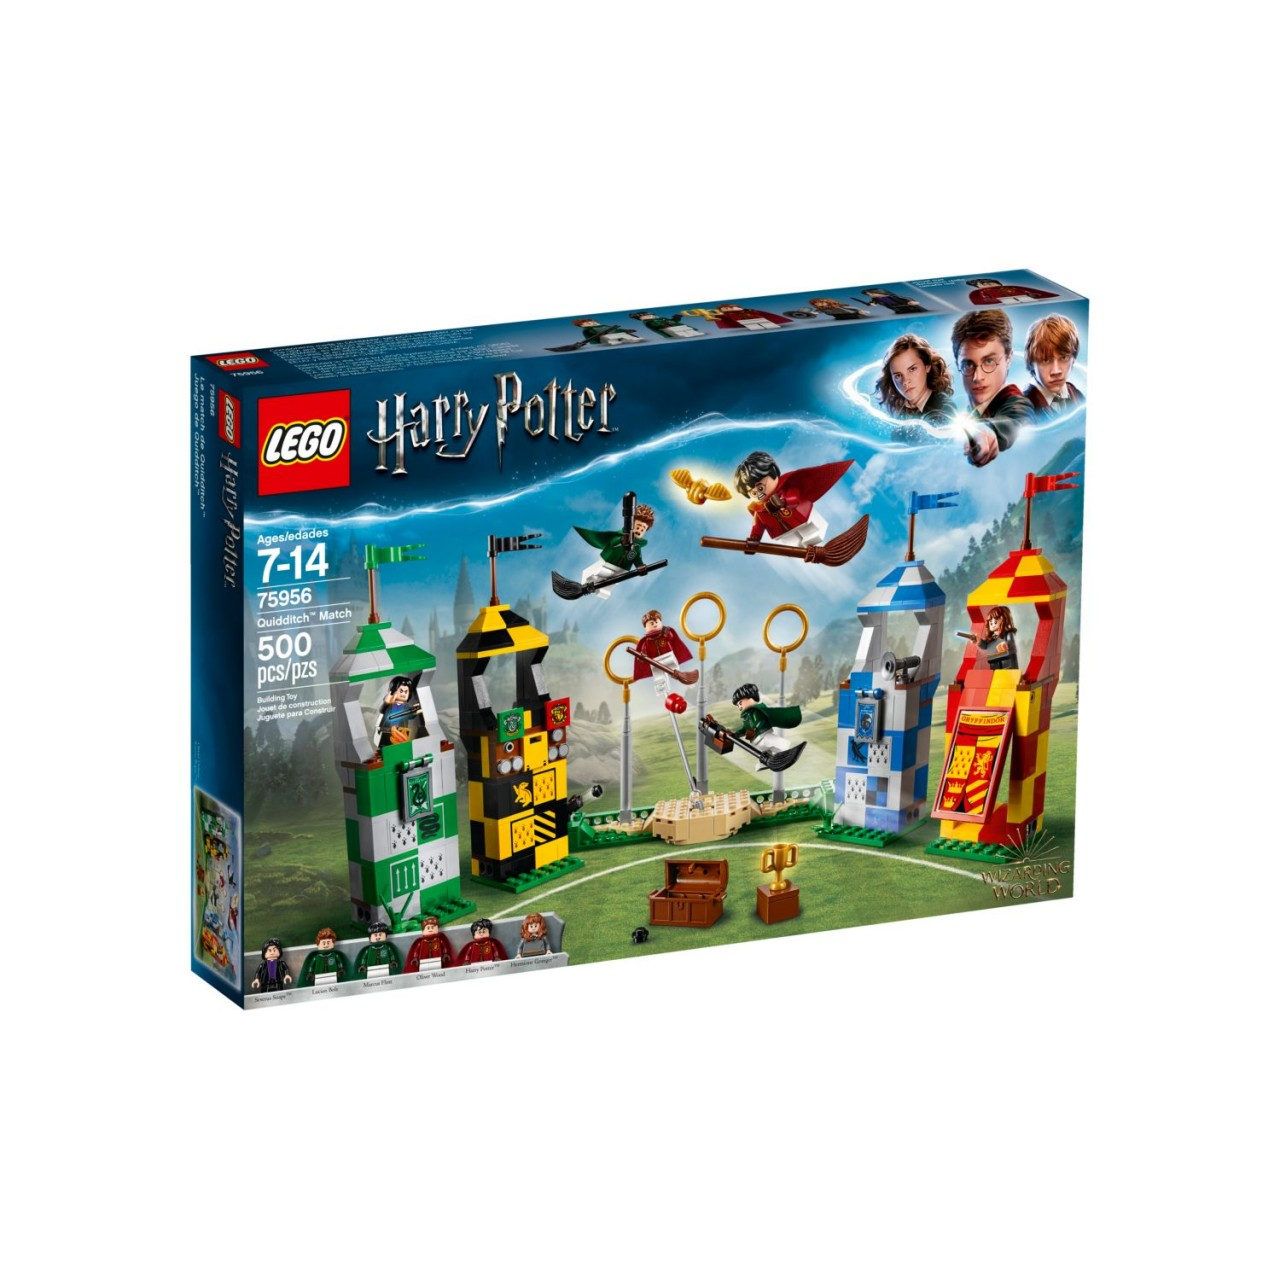 LEGO HARRY POTTER 75956 Quidditch Turnier